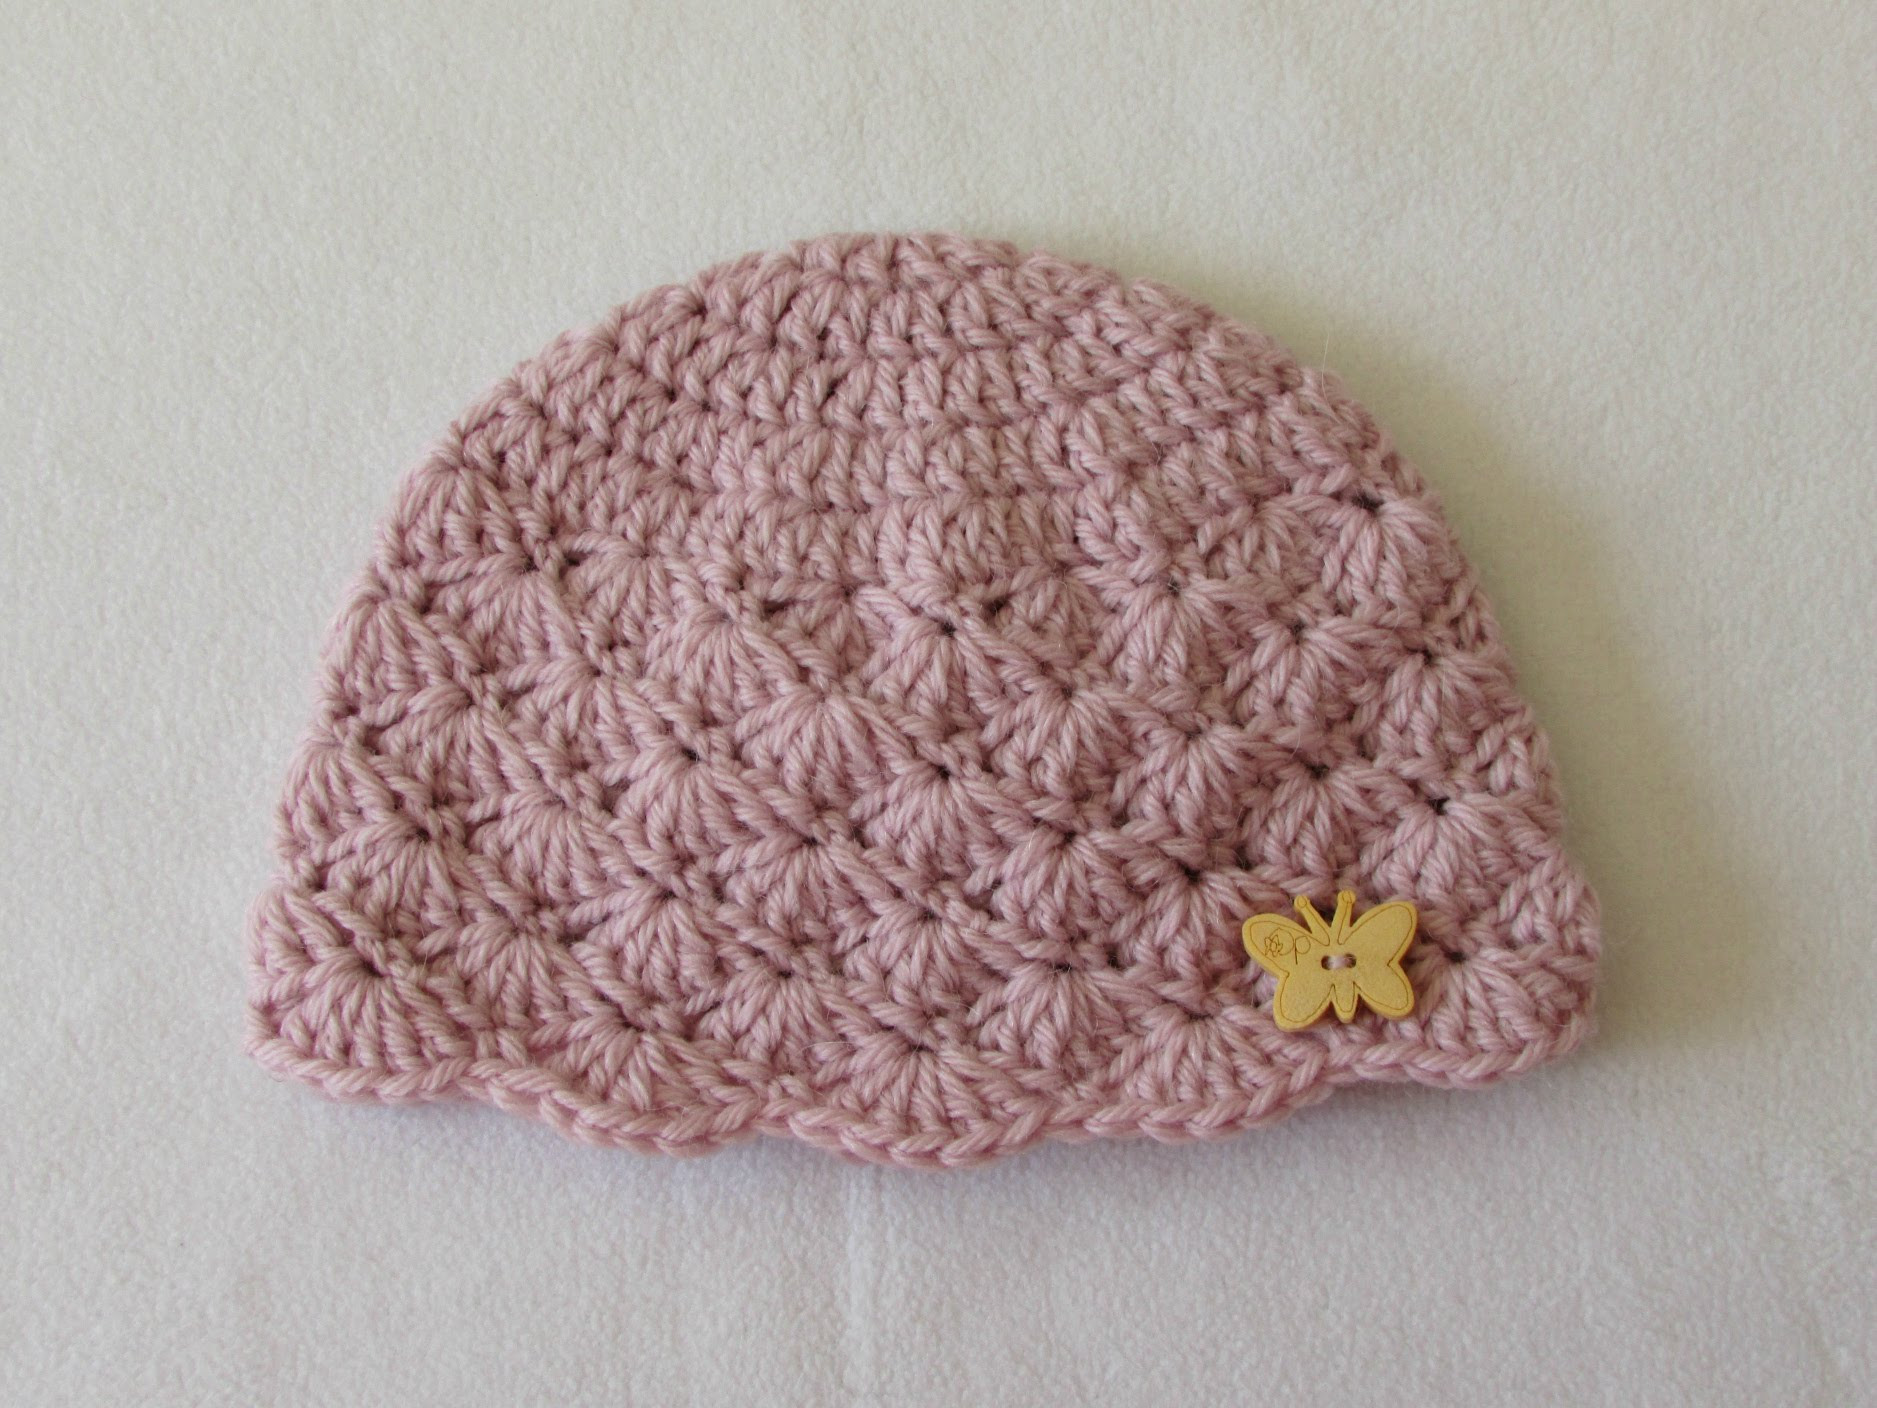 Baby Beanie Crochet Pattern Fresh A Guide to Ing Crochet Baby Beanie Crochet and Of Amazing 43 Images Baby Beanie Crochet Pattern